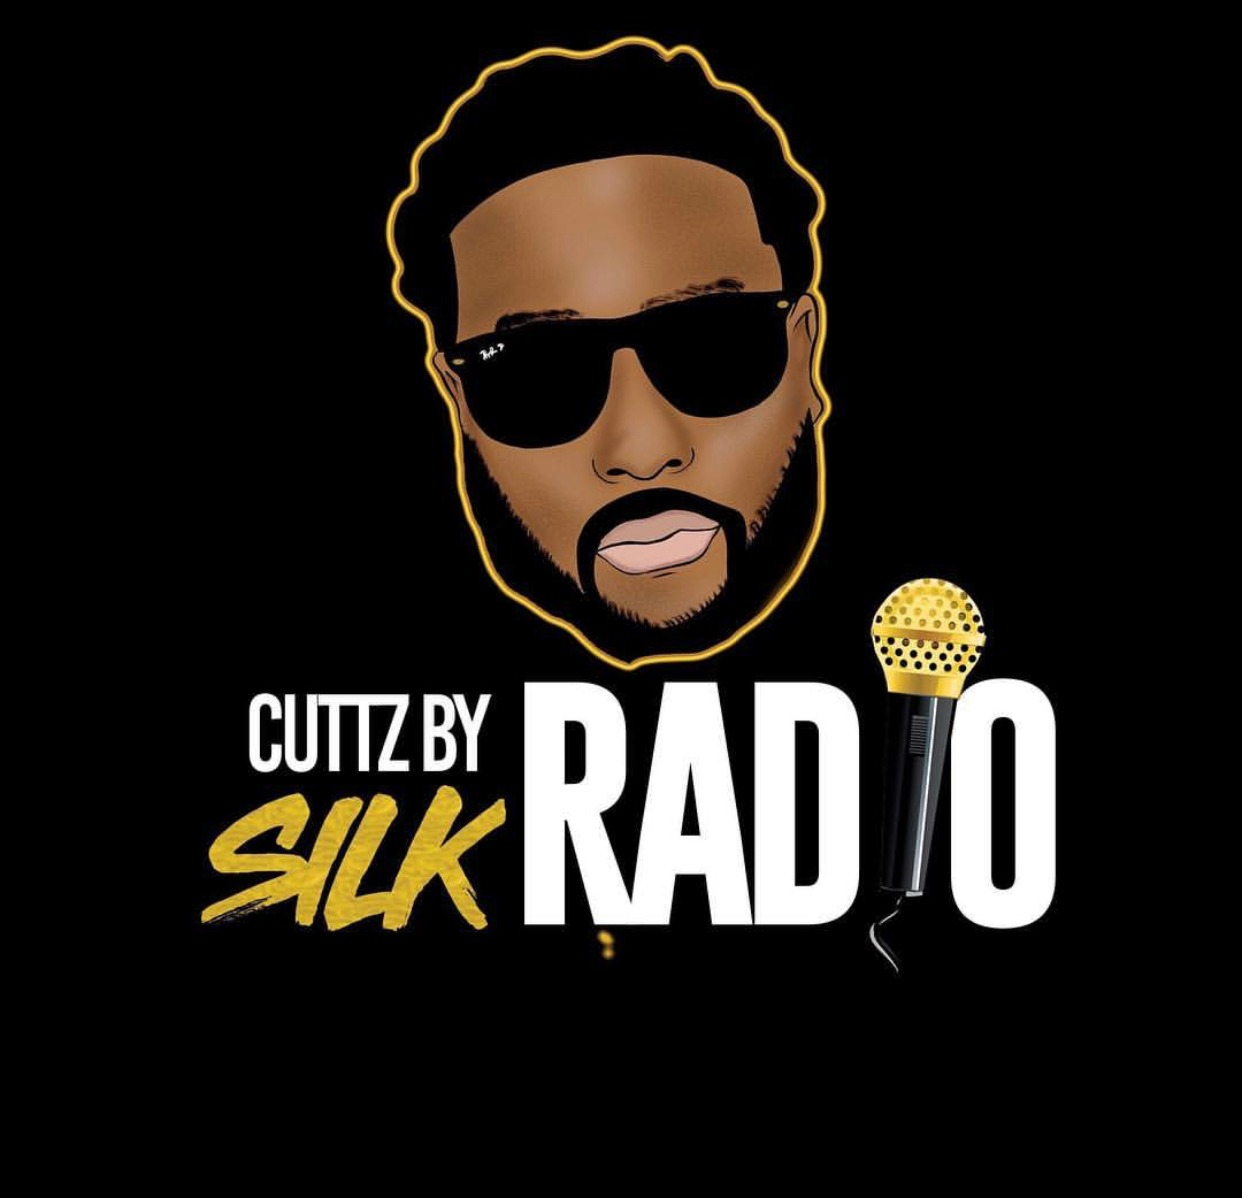 Cuttz By Silk Radio